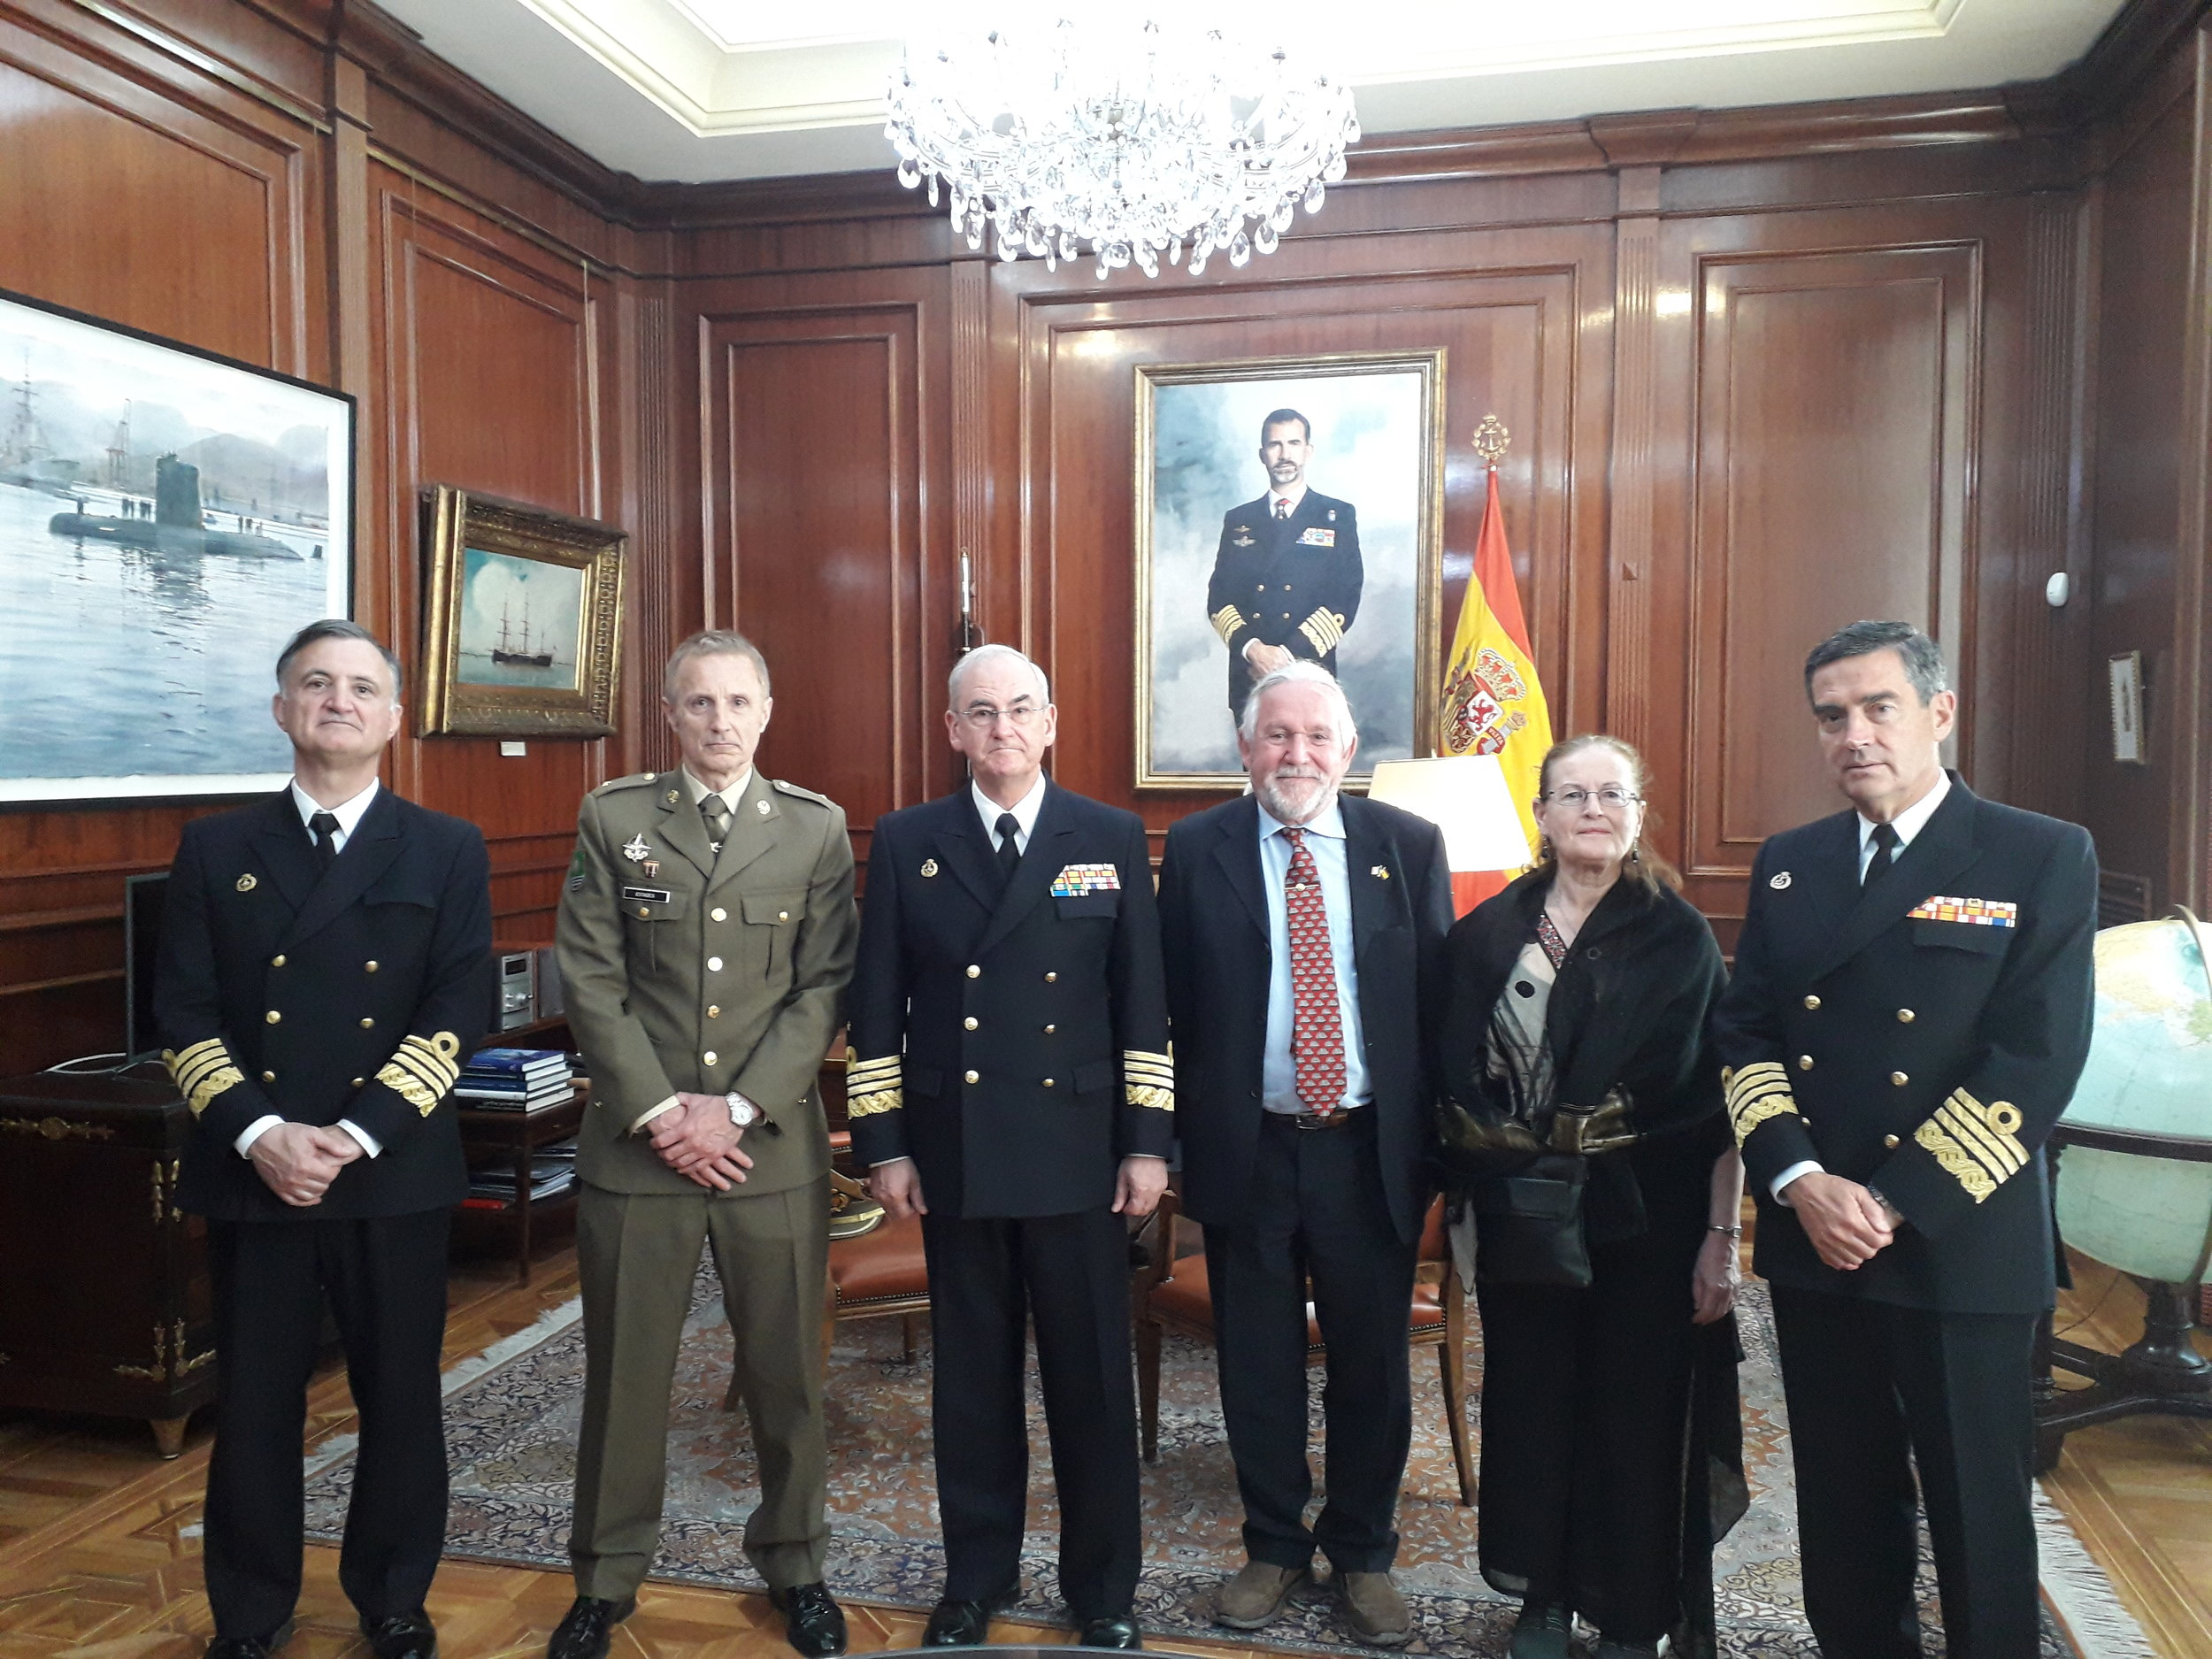 Eddie & Mary O'Gorman with Joaquin Estades Seco and senior Spanish Navy personnel in Madrid, April 2019